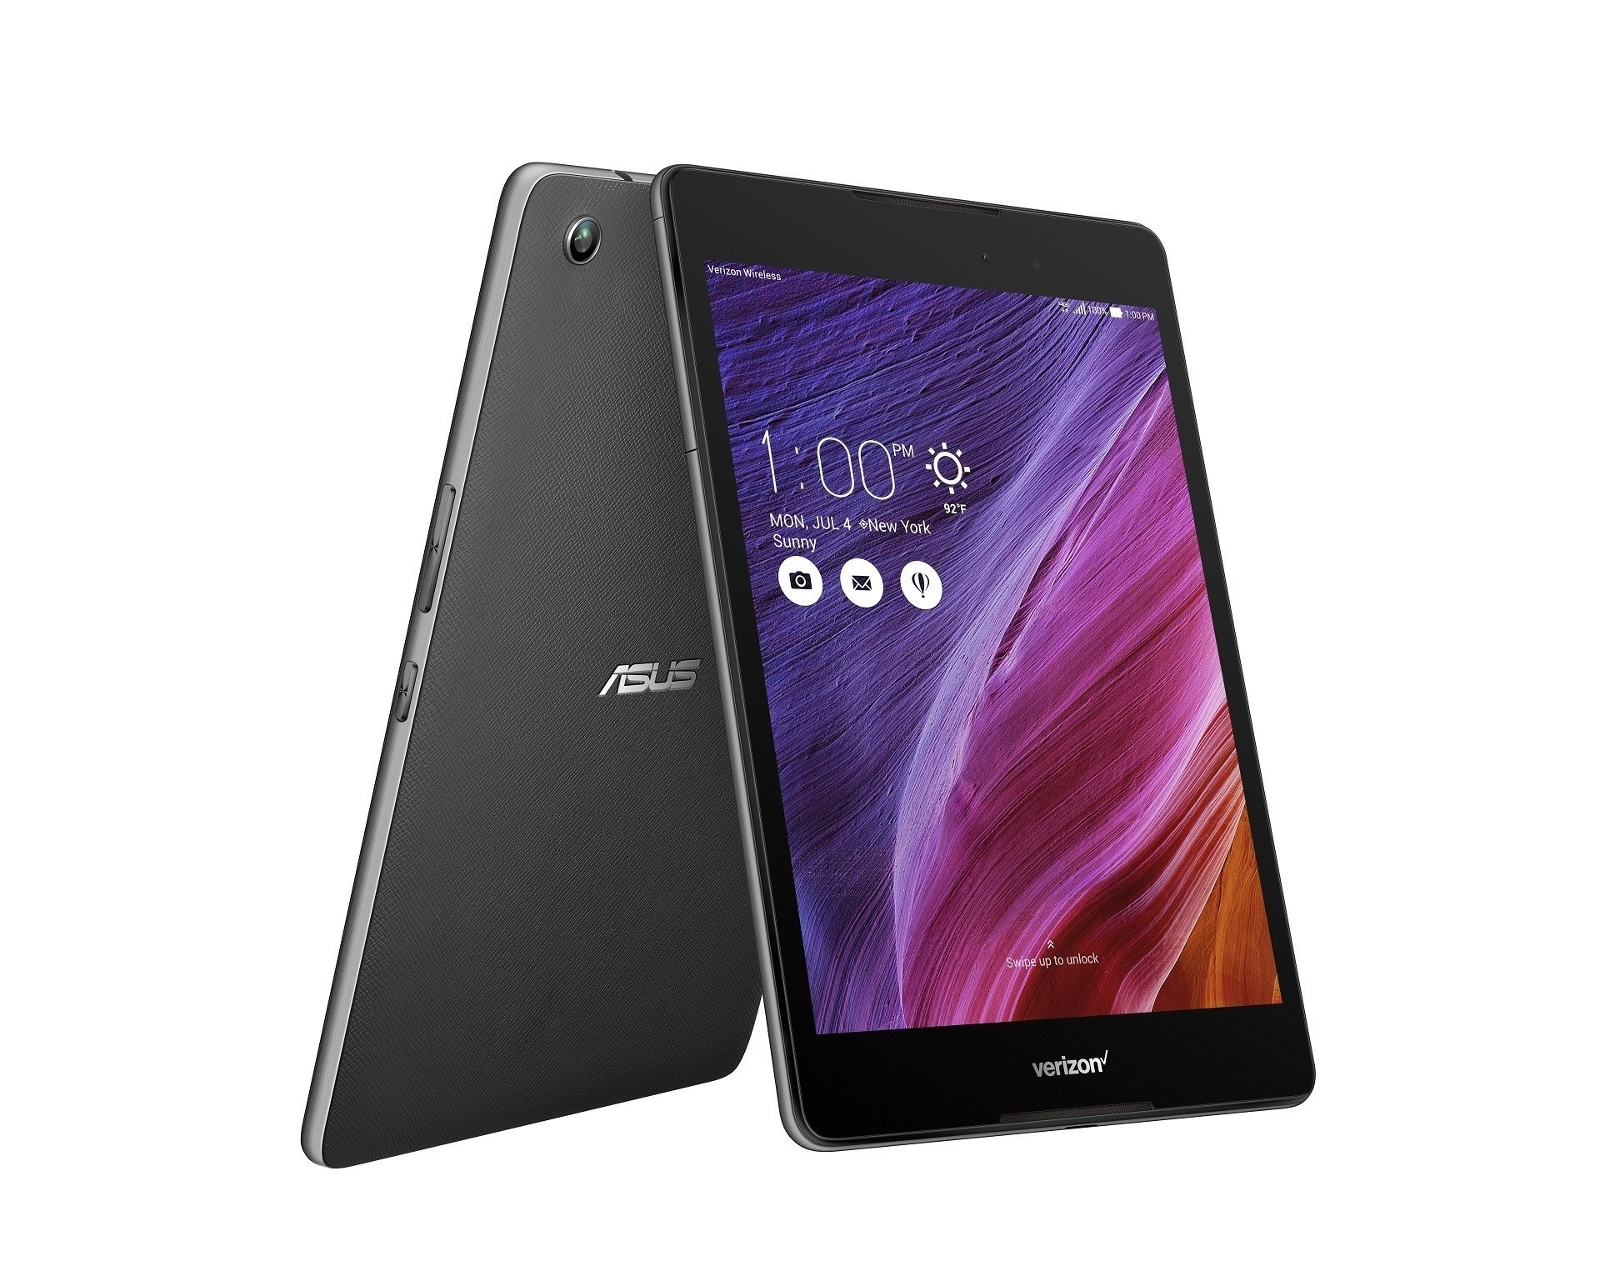 Best Security Android Tablet